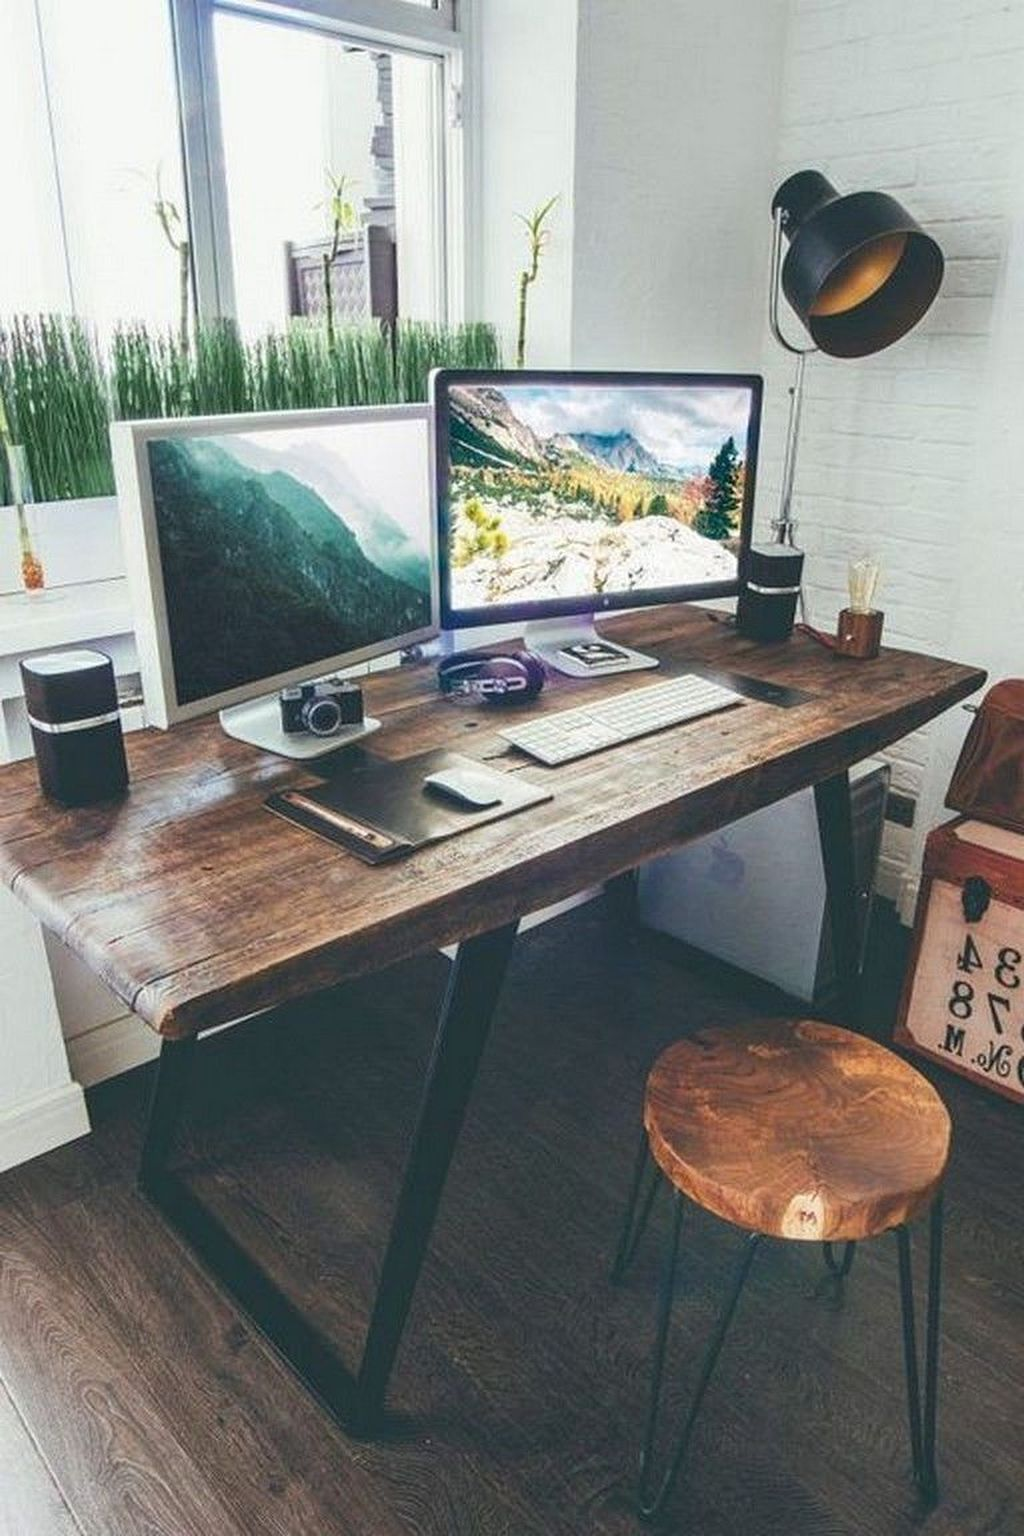 46 Impressive Diy Home Office Table Ideas For Create Comfortable Work Home Office Table Home Office Furniture Work Space Decor